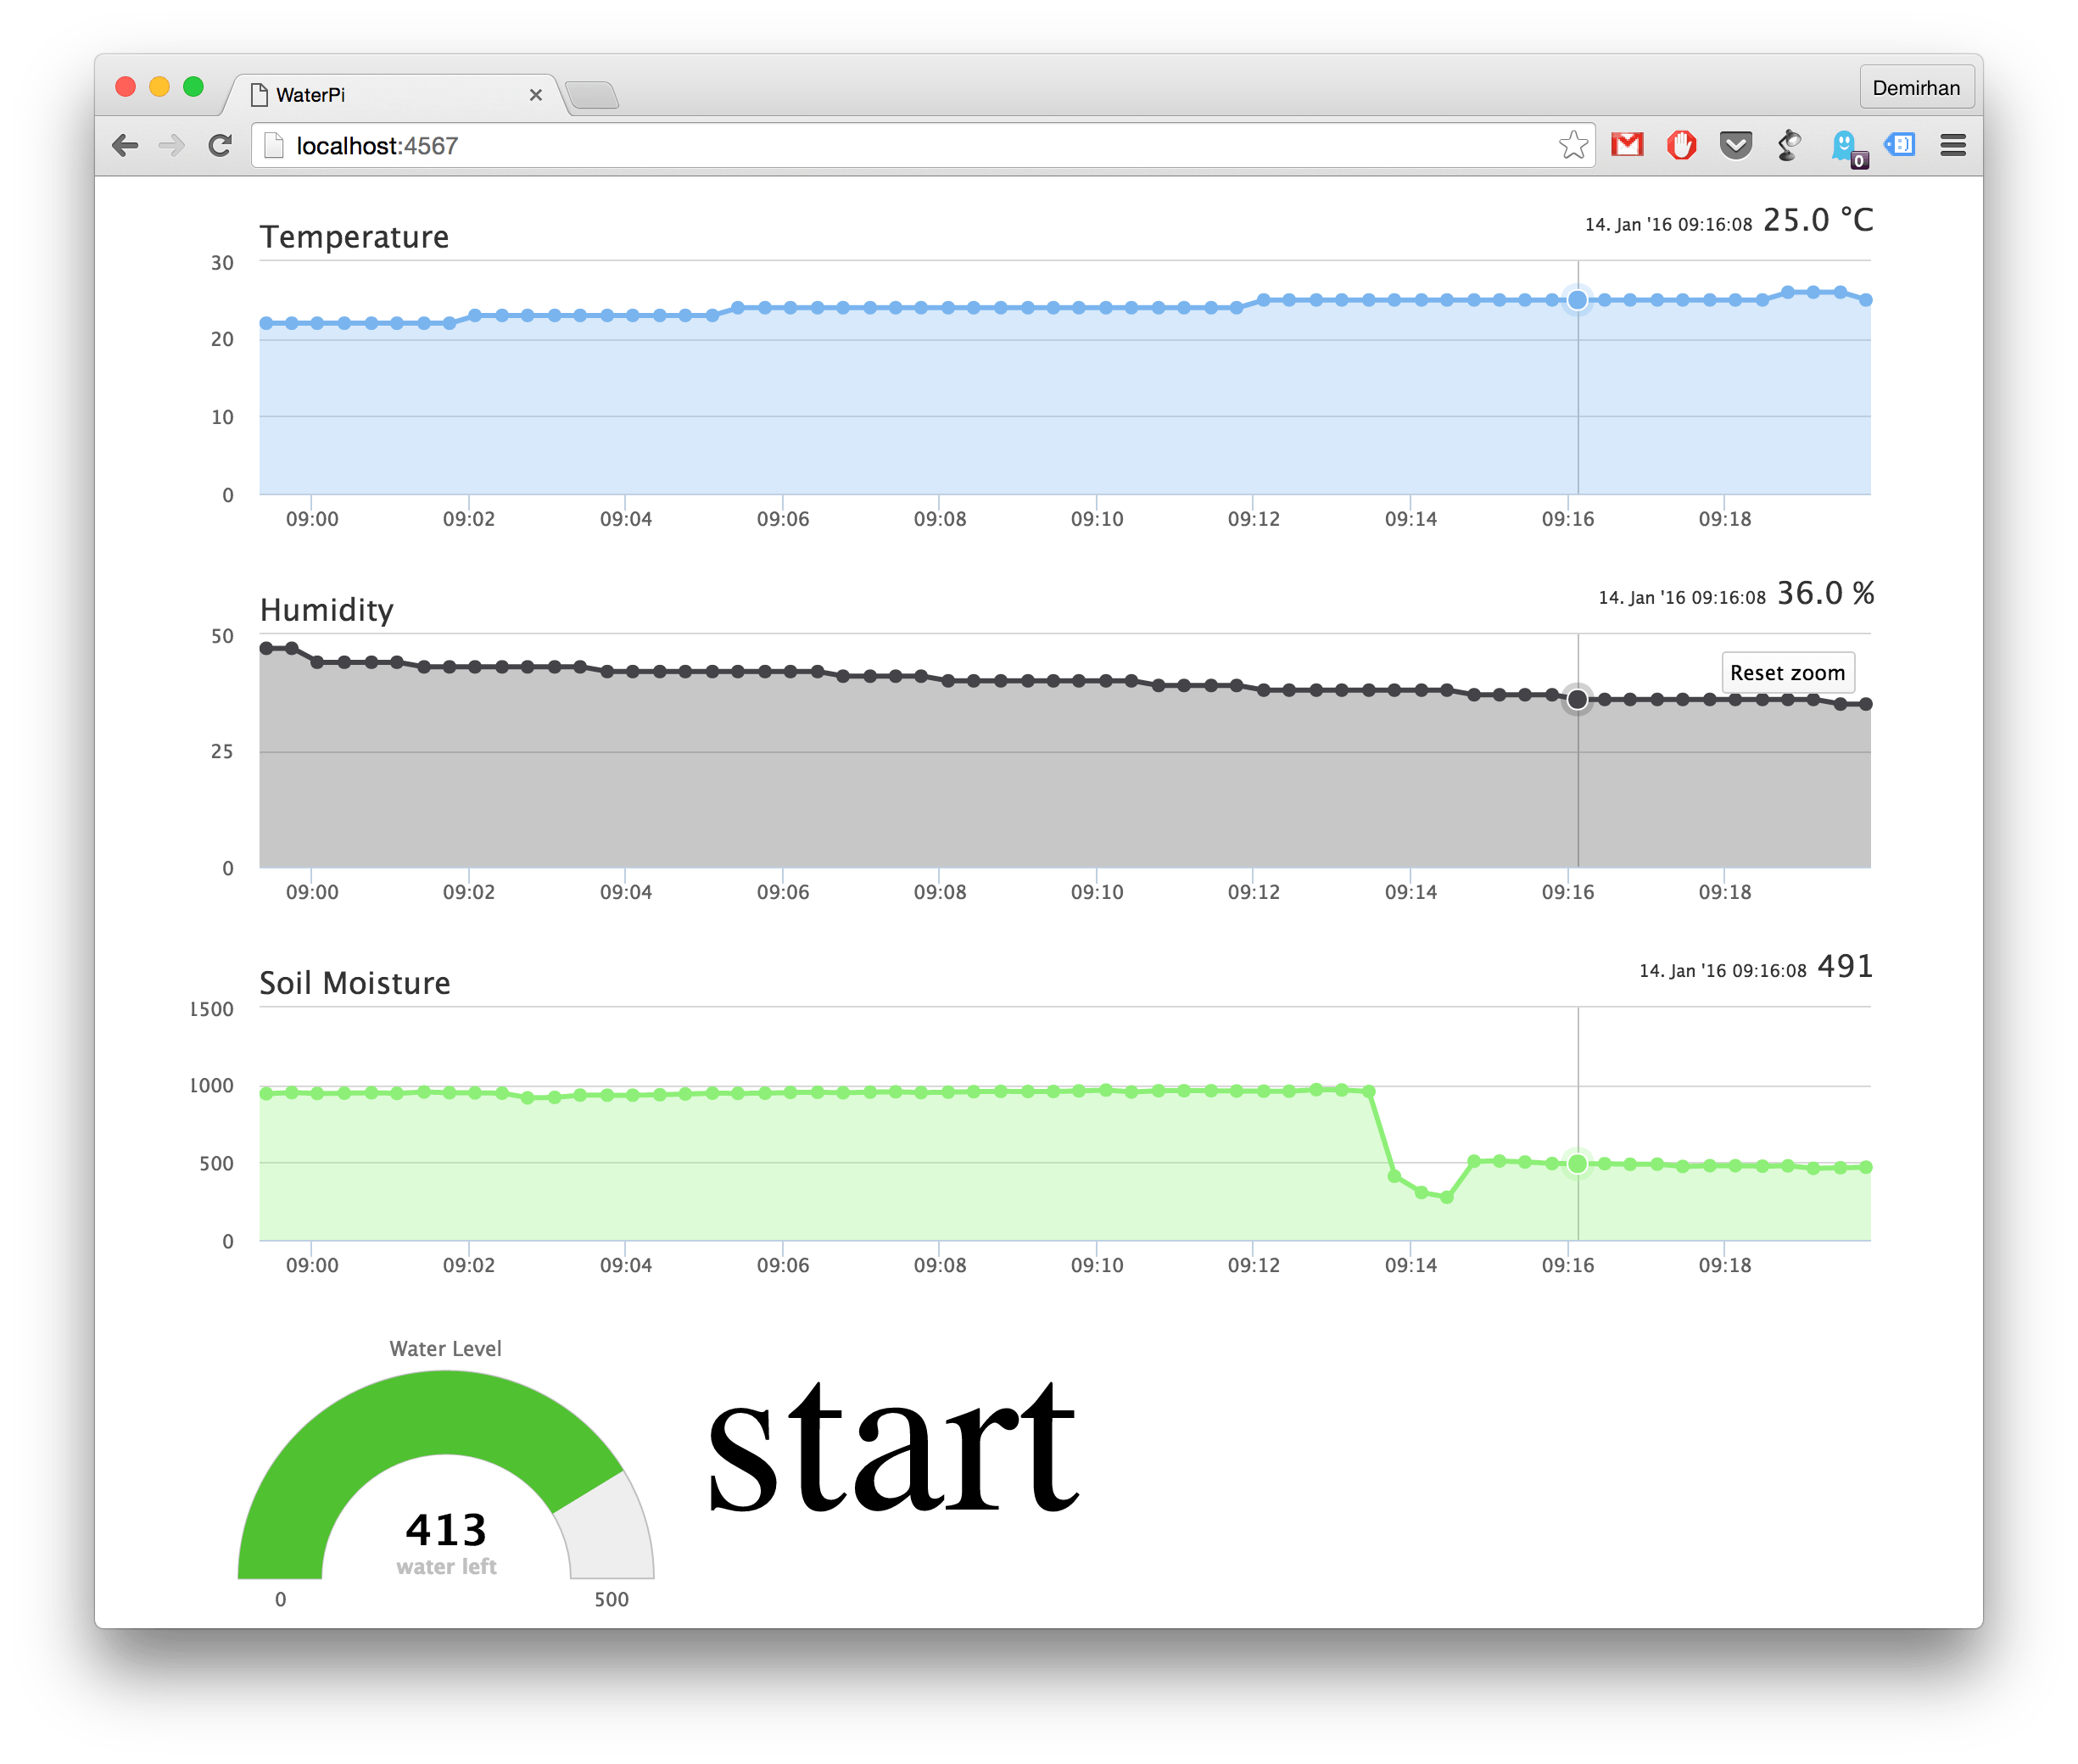 waterpi web interface